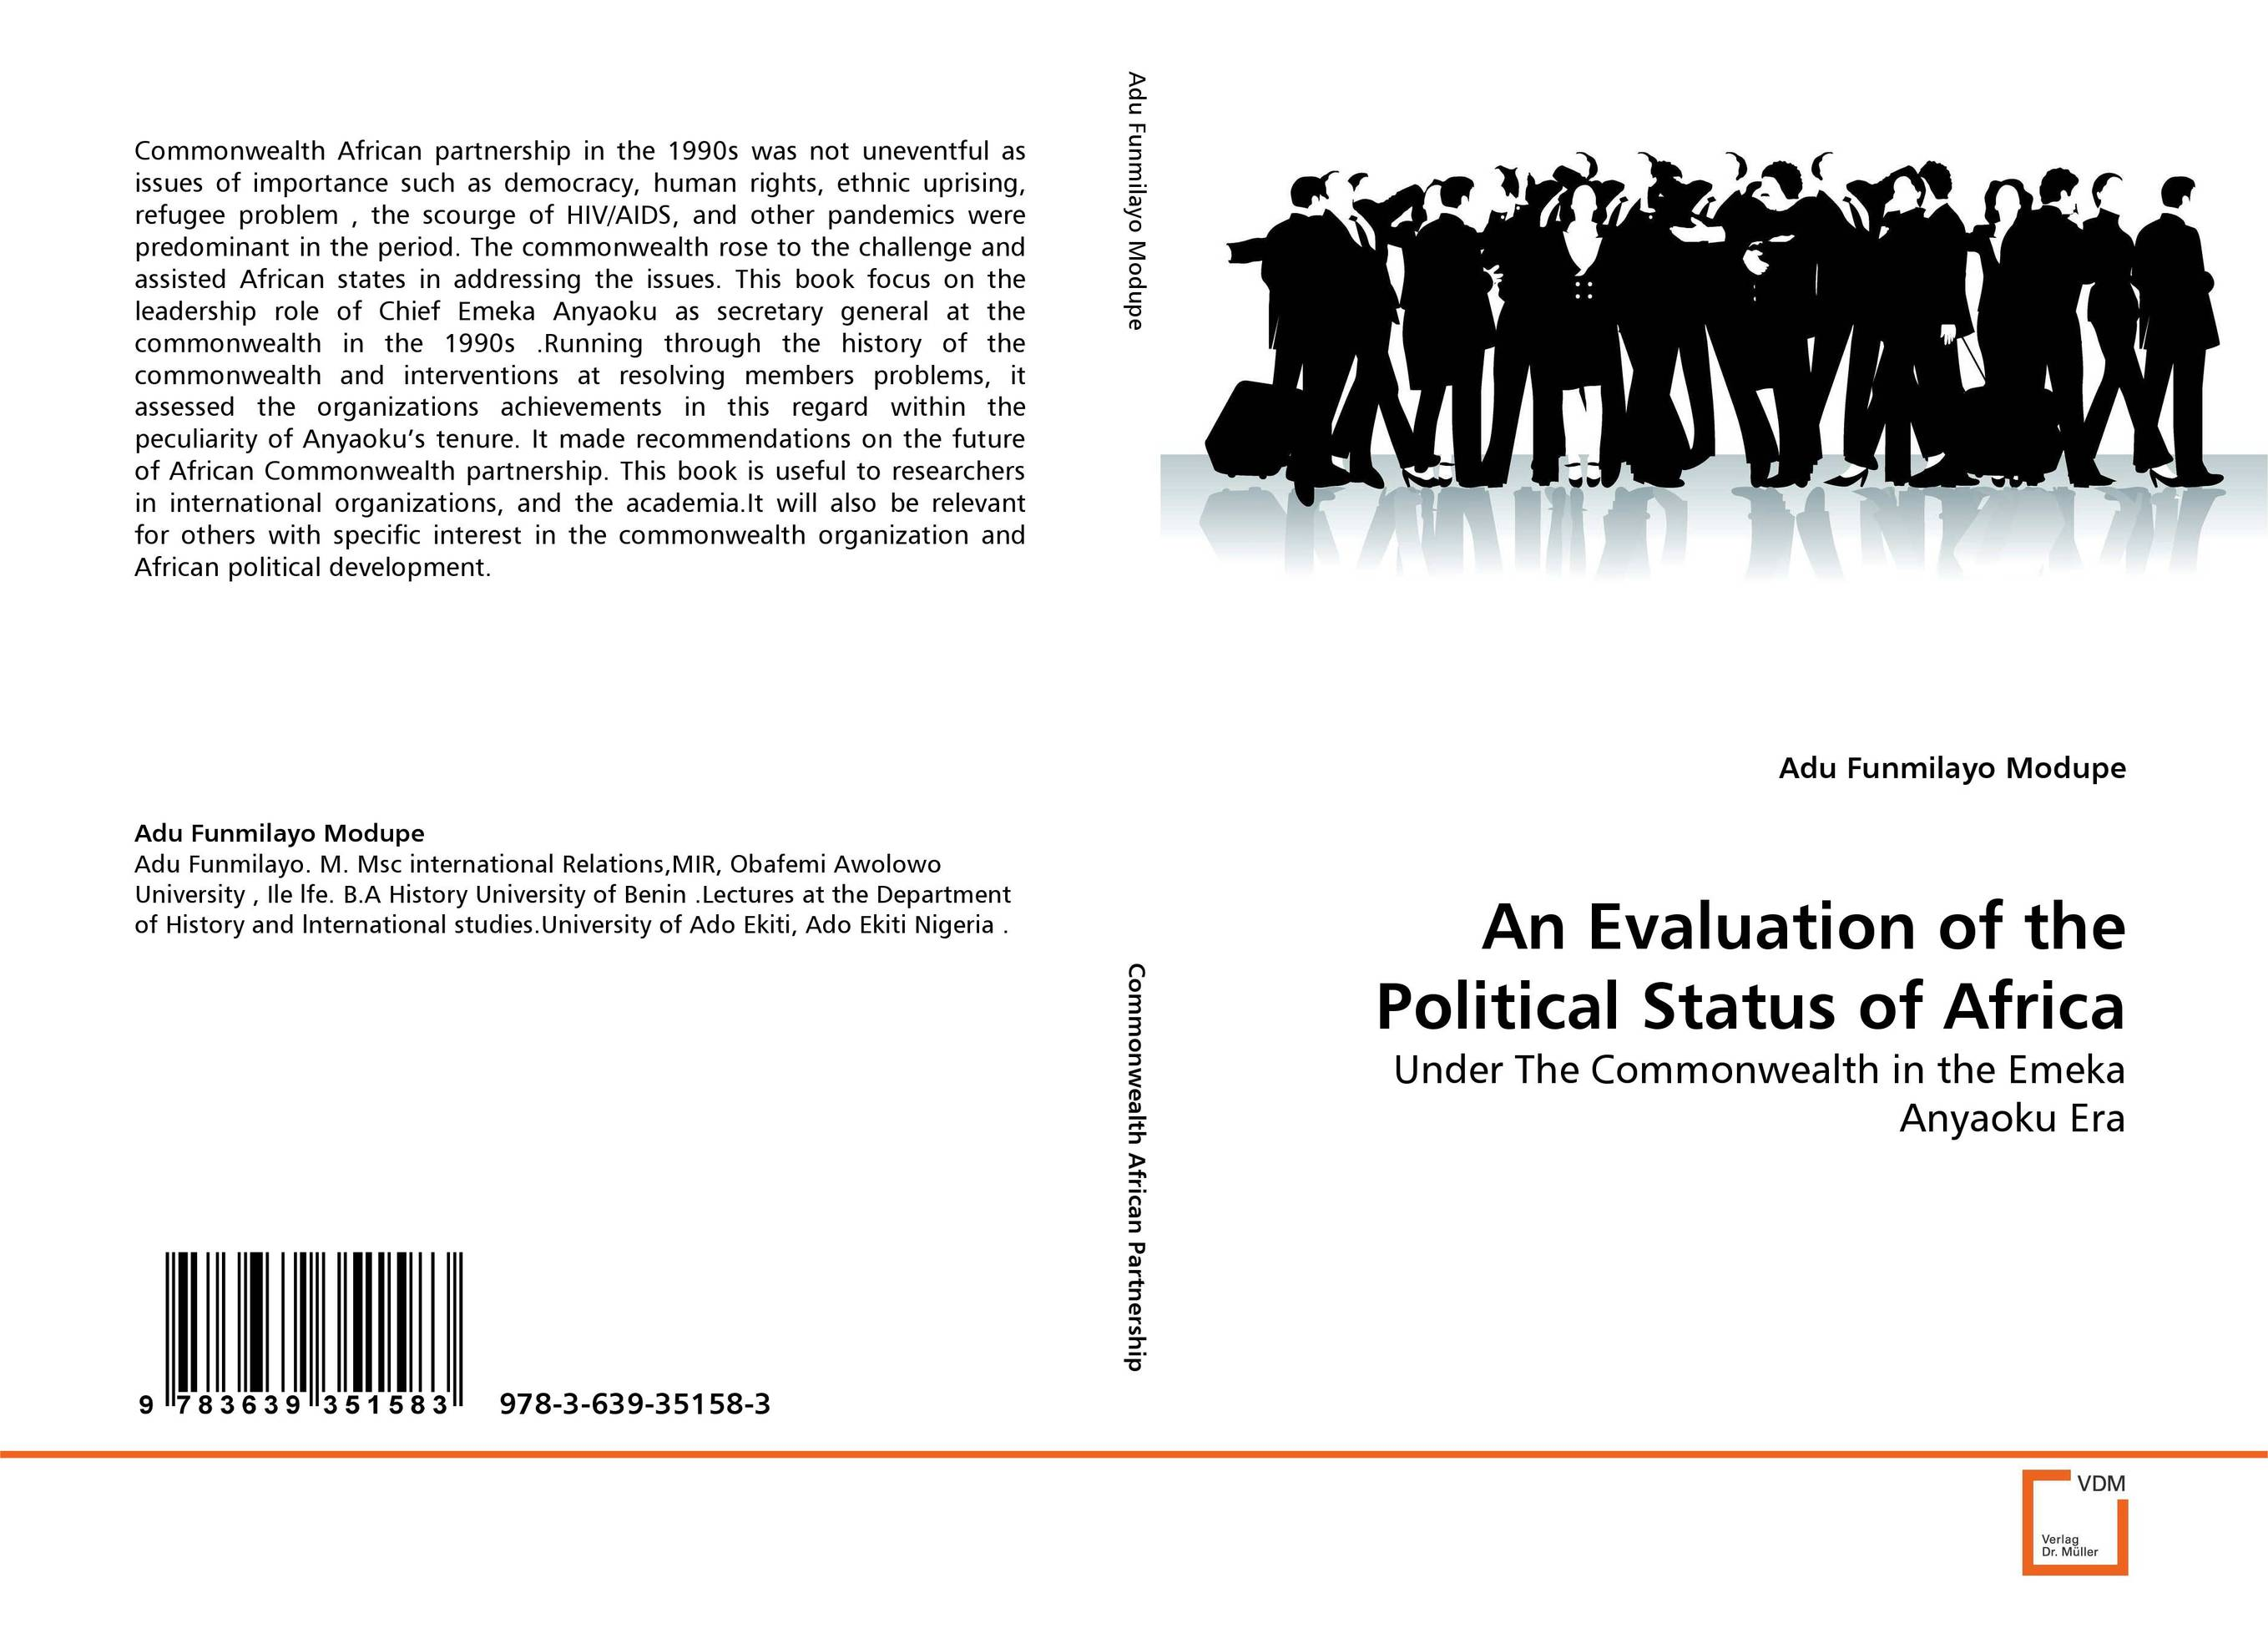 An Evaluation of the Political Status of Africa trans border ethnic hegemony and political conflict in africa